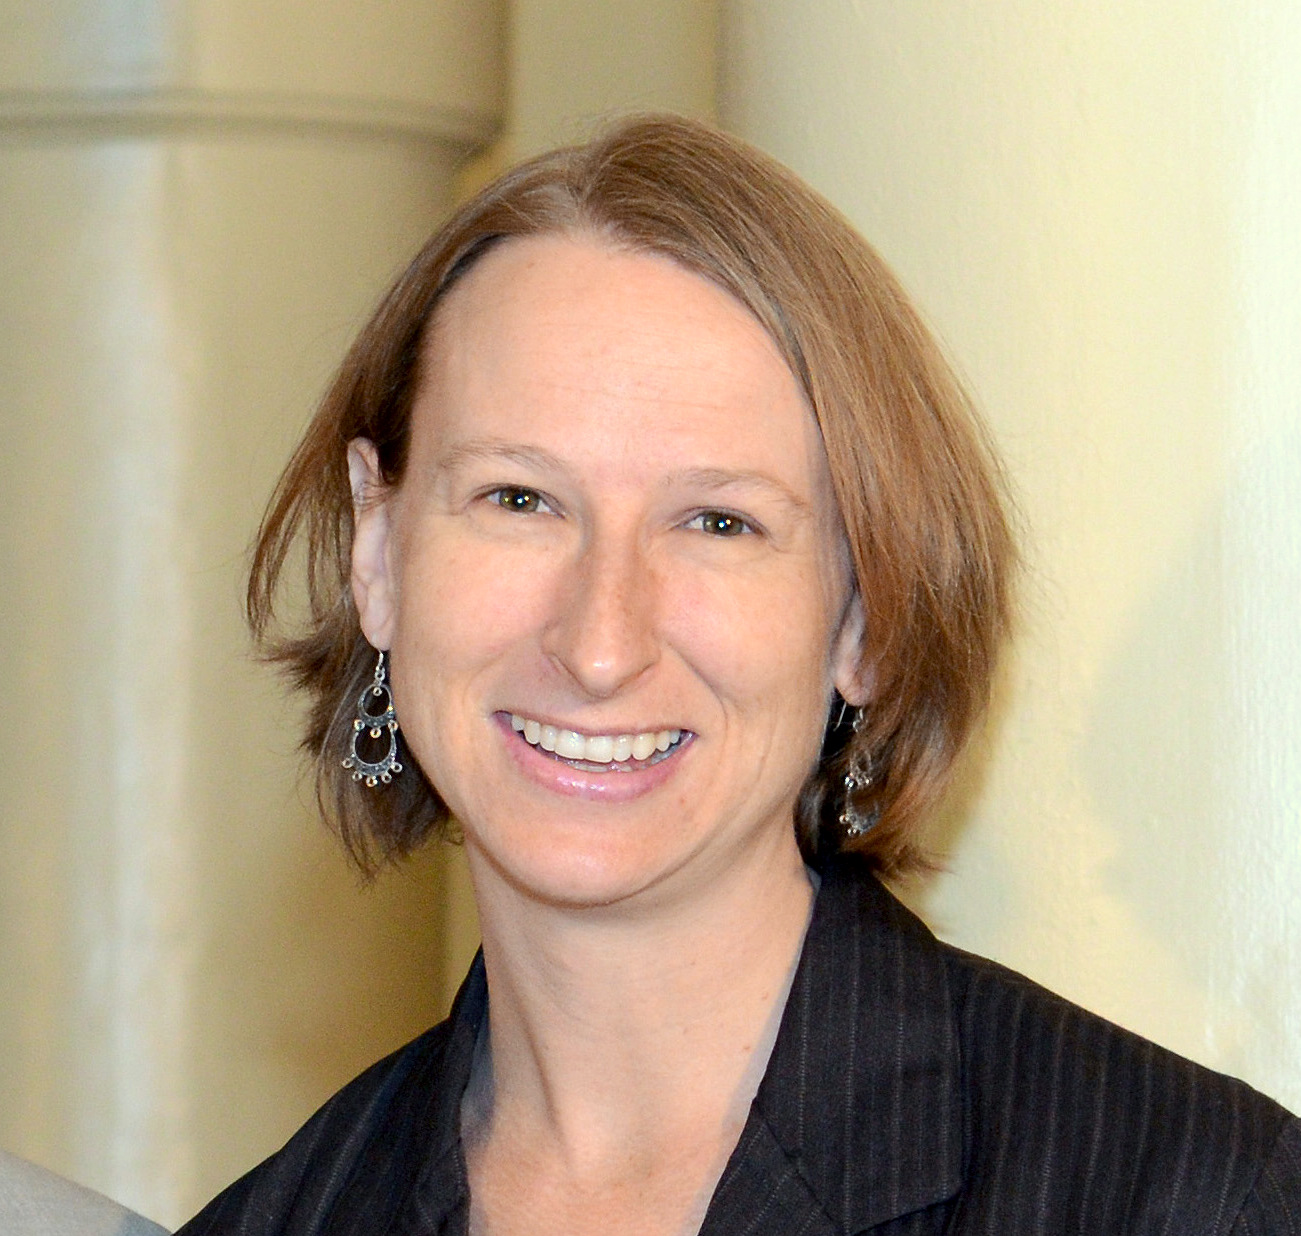 Christine Brinker, director of combined heat and power at the Southwest Energy Efficiency Project